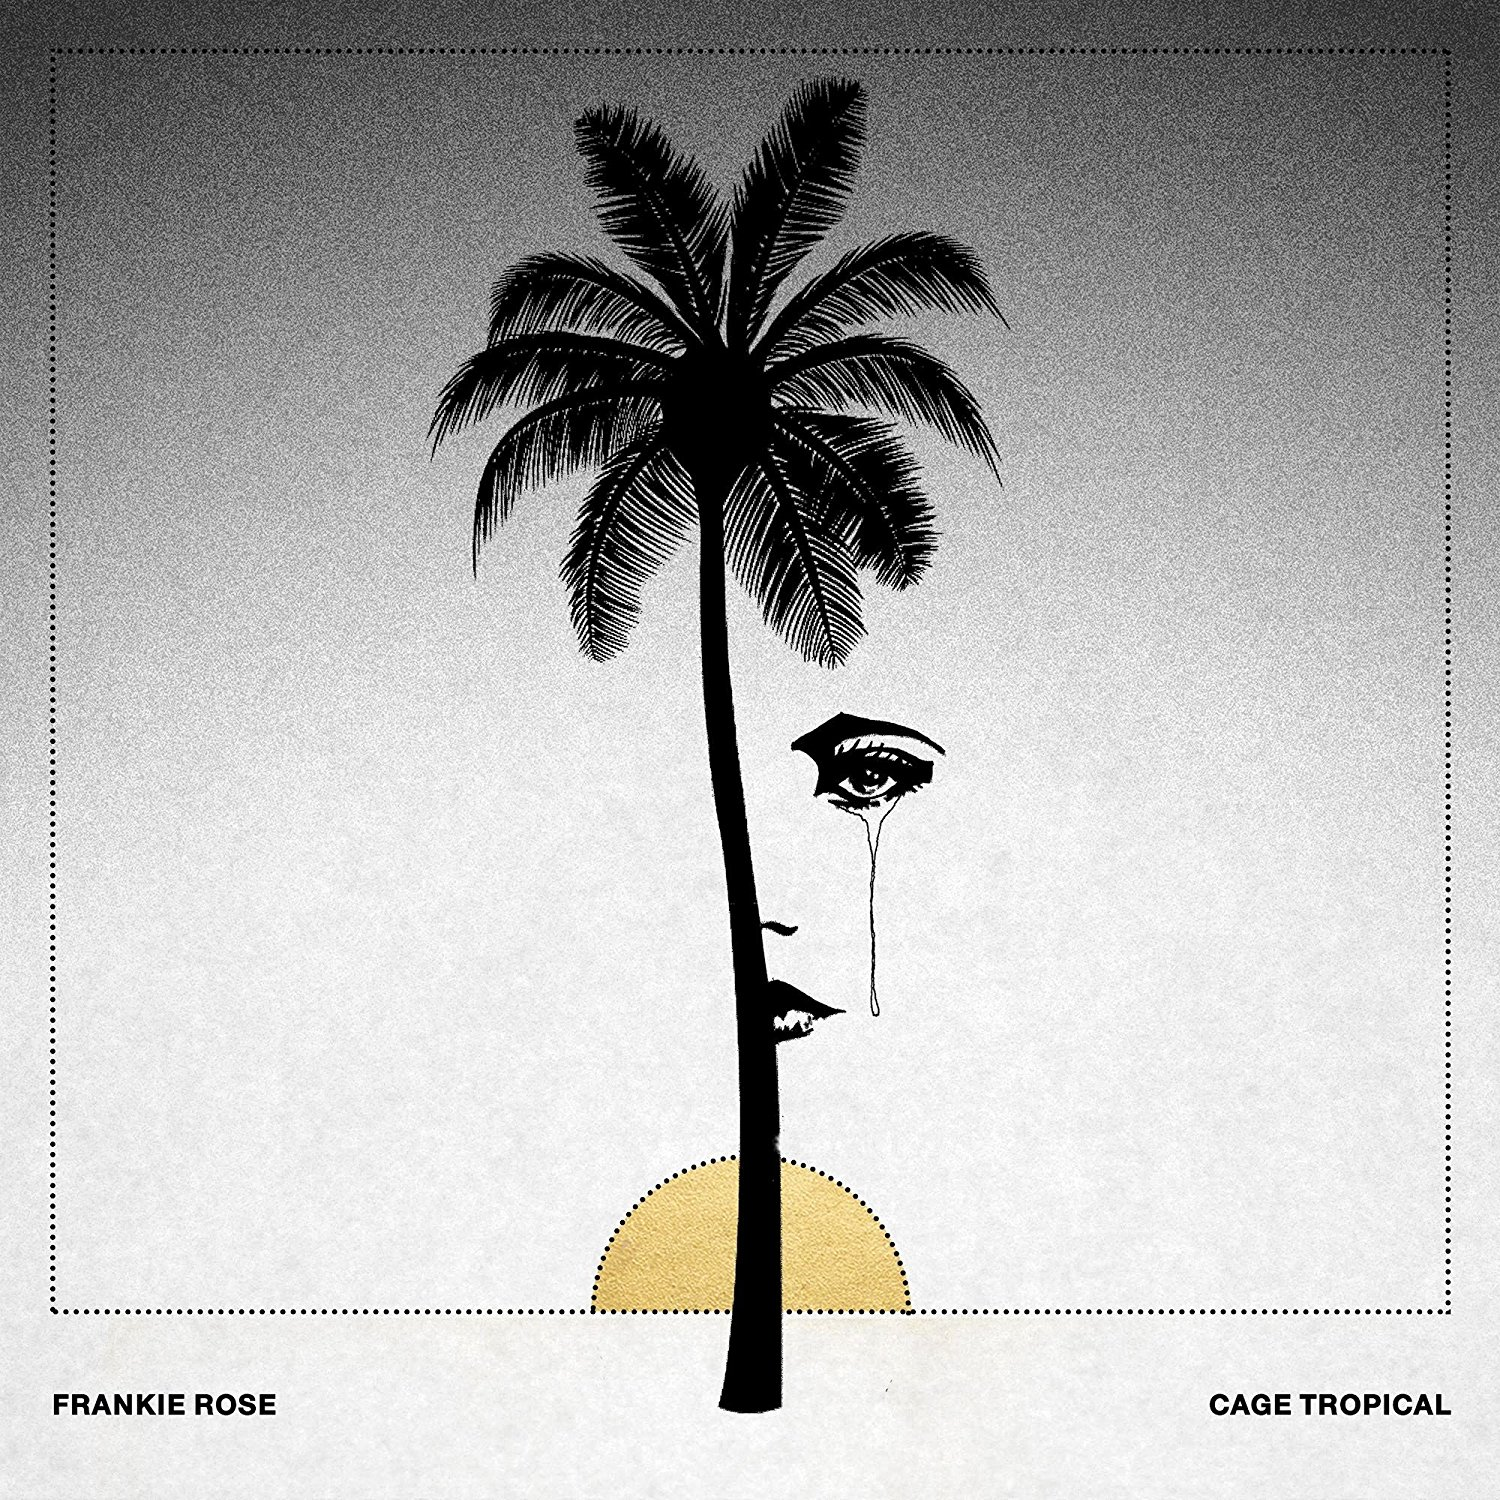 Frankie Rose - Cage Tropical [Limited Edition White LP]